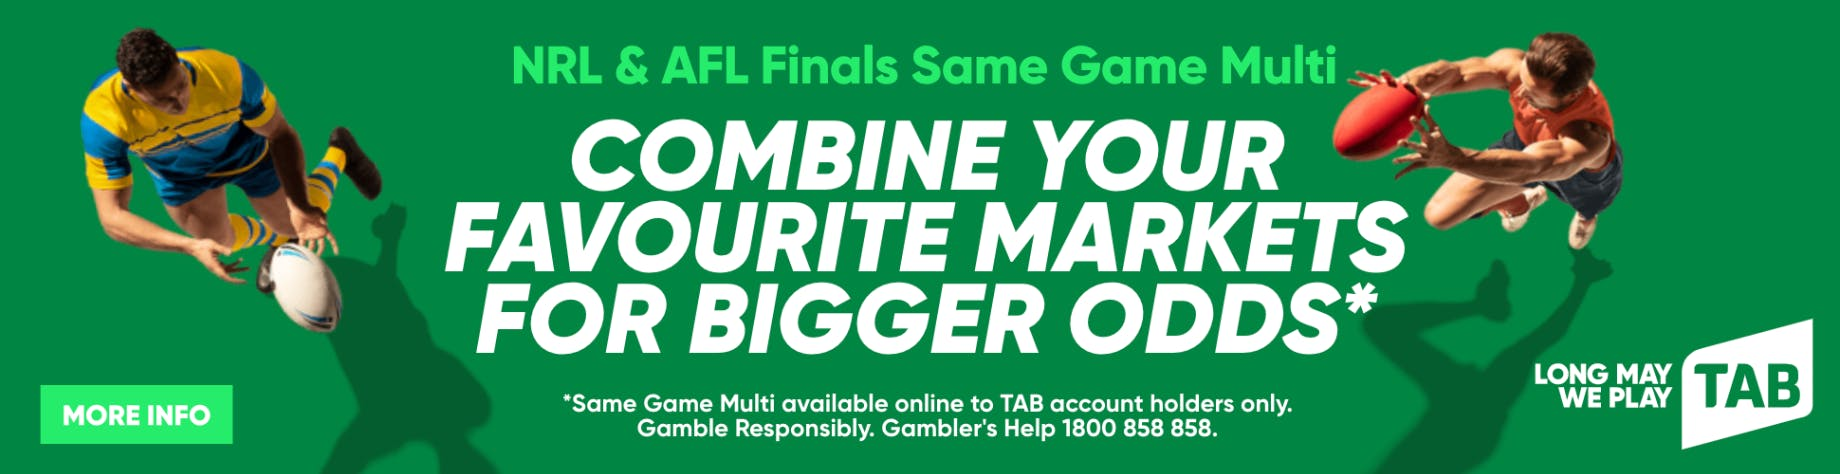 afl betting odds round 136